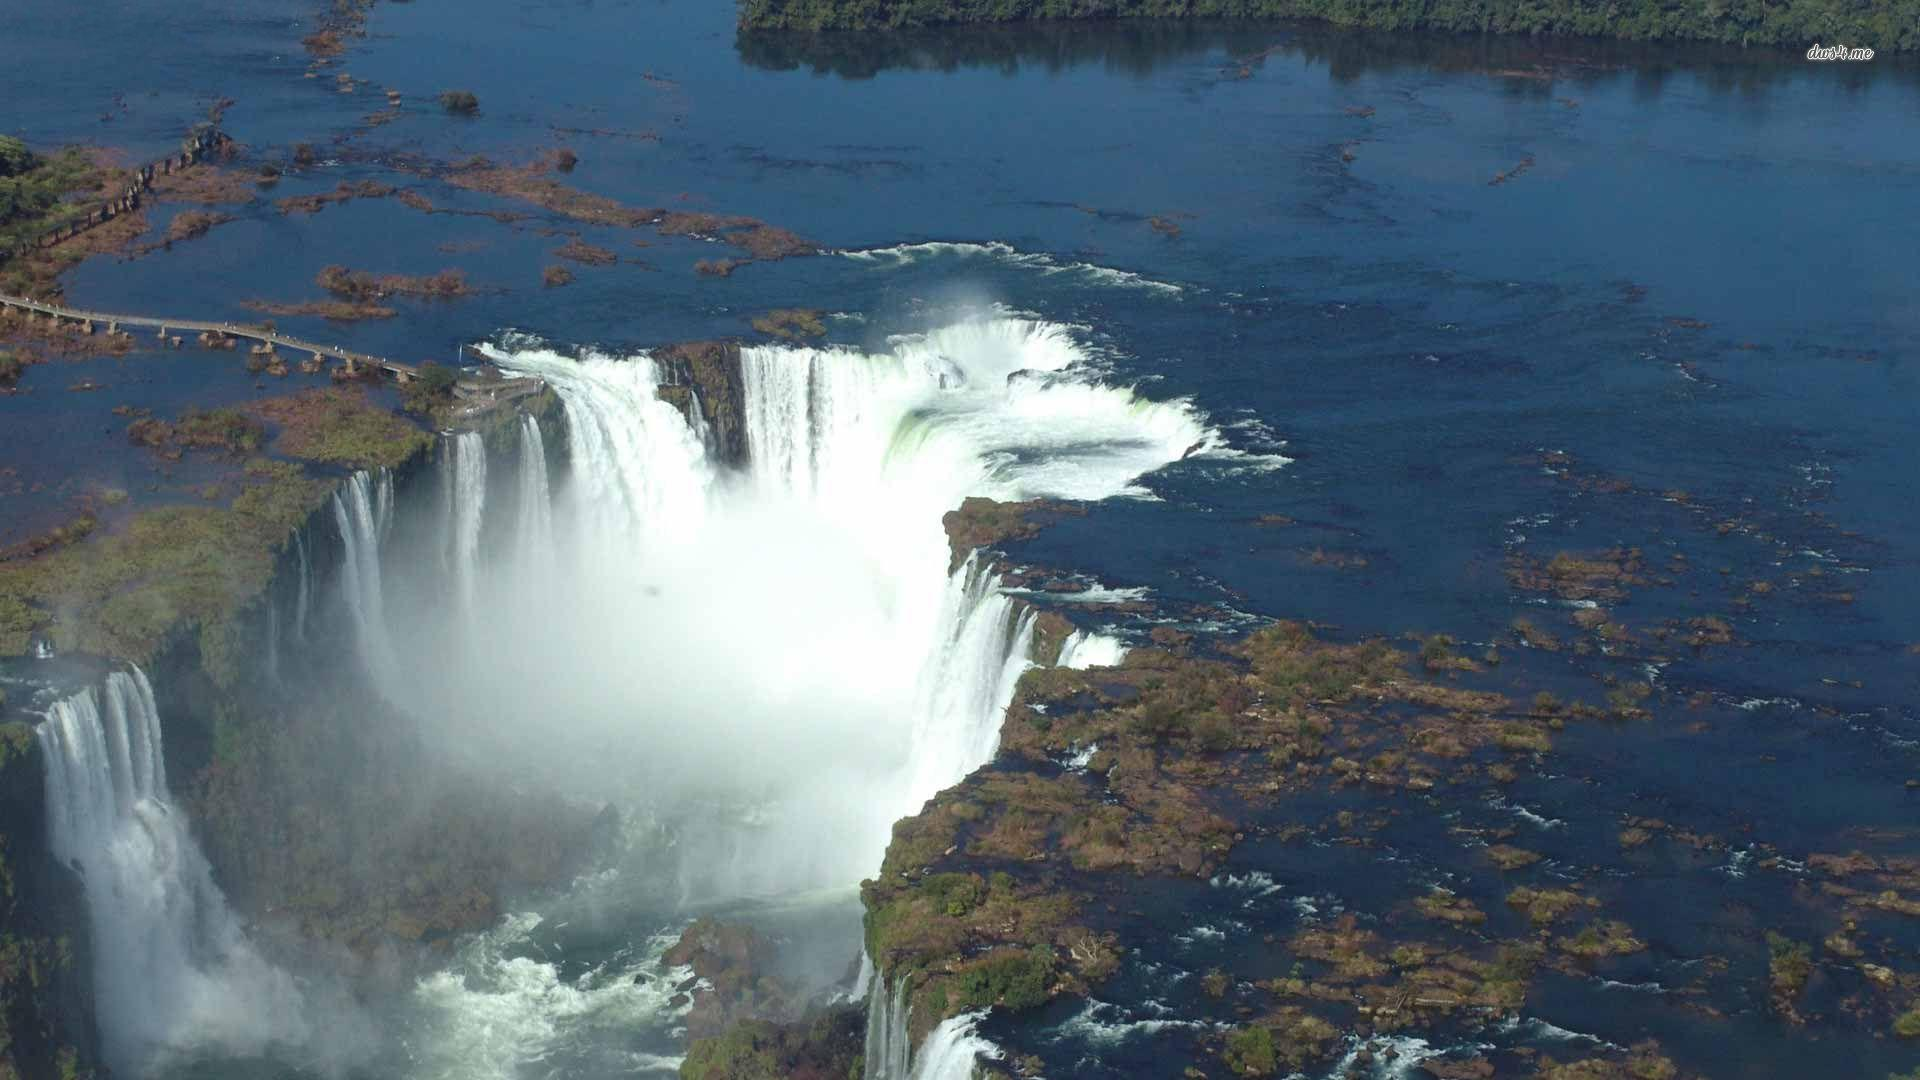 Niagara Falls Hd Wallpaper For Desktop Iguazu Falls Wallpapers Wallpaper Cave